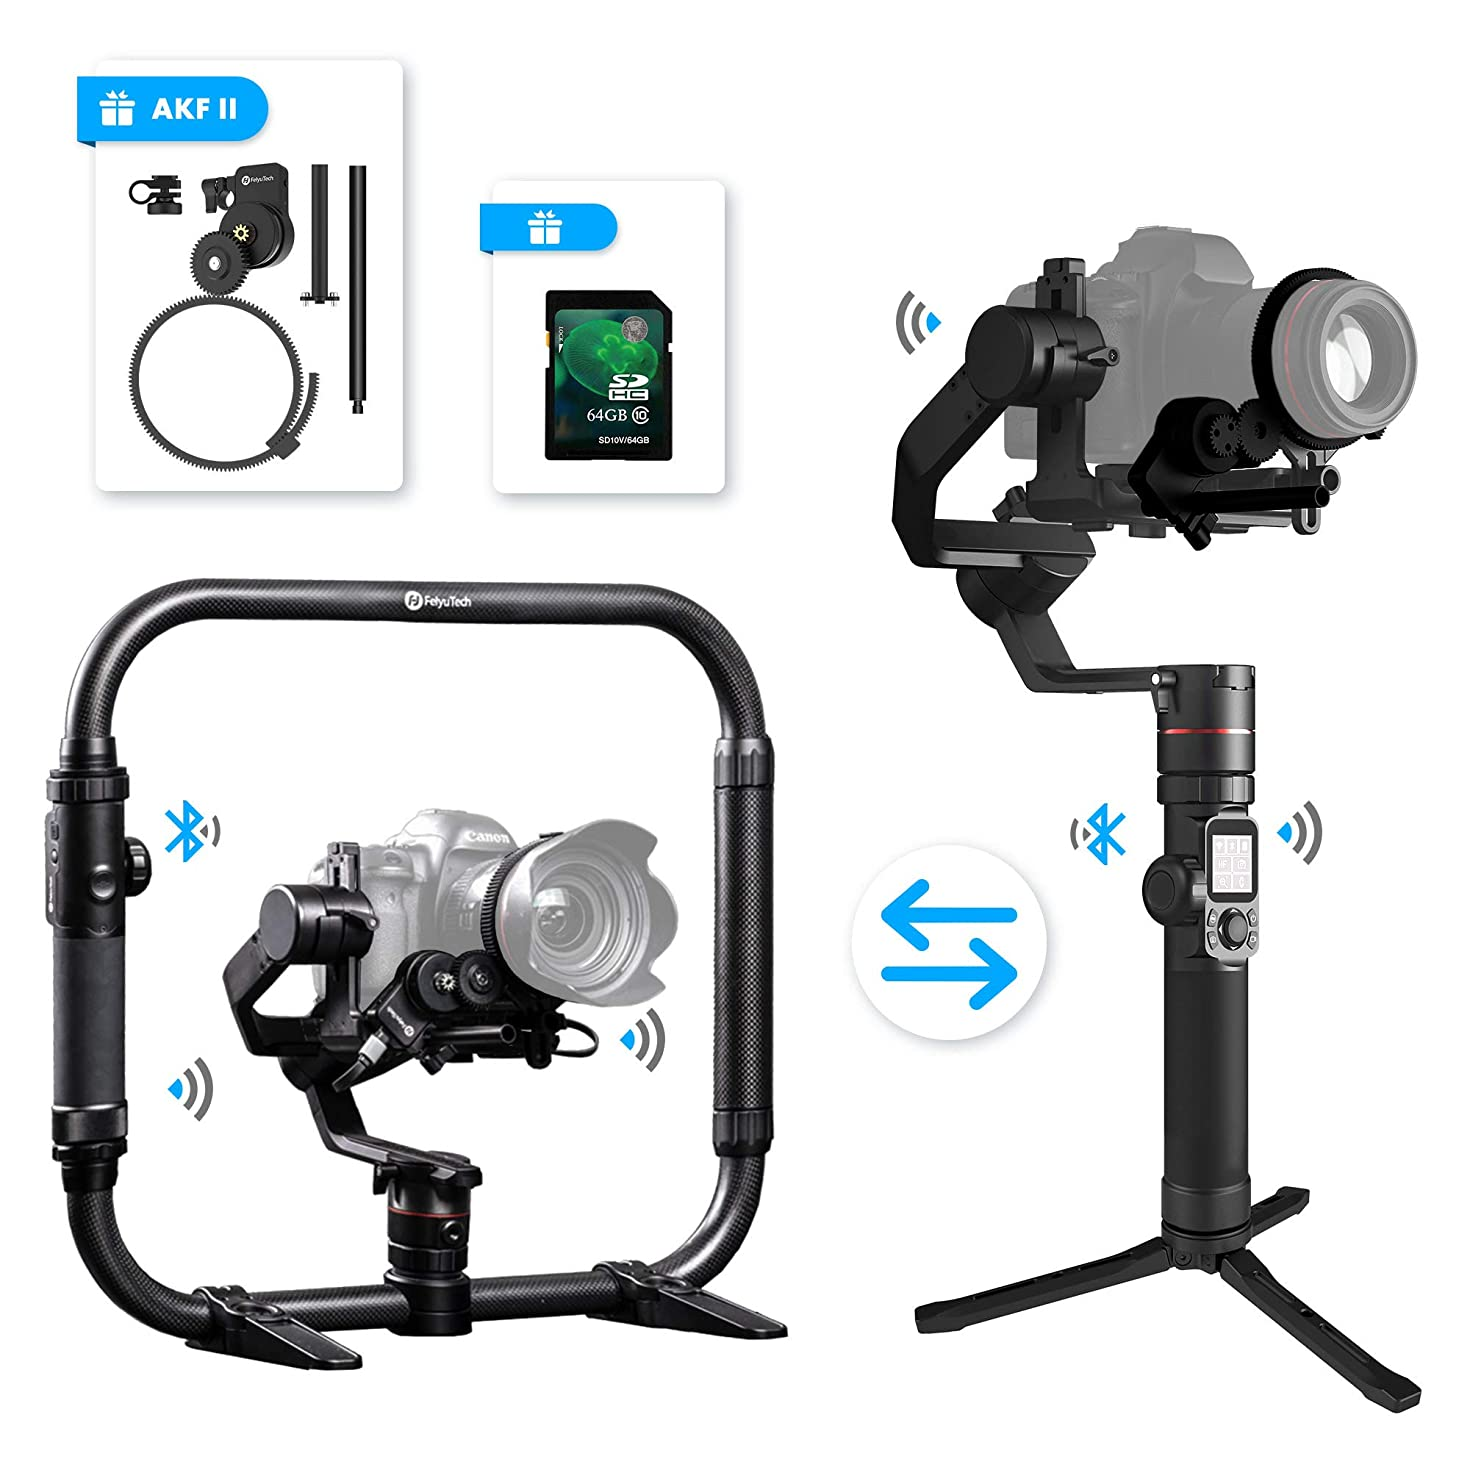 FeiyuTech Feiyu AK4000 3 Axis DSLR Gimbal Stabilizer, Dual Handheld KIT, w/Ring-Style Grip Handle and Follow Focus II, 8.8 lbs Max Load, Compatible with Canon EOS Series, Nikon & Sony Series DSLR Came